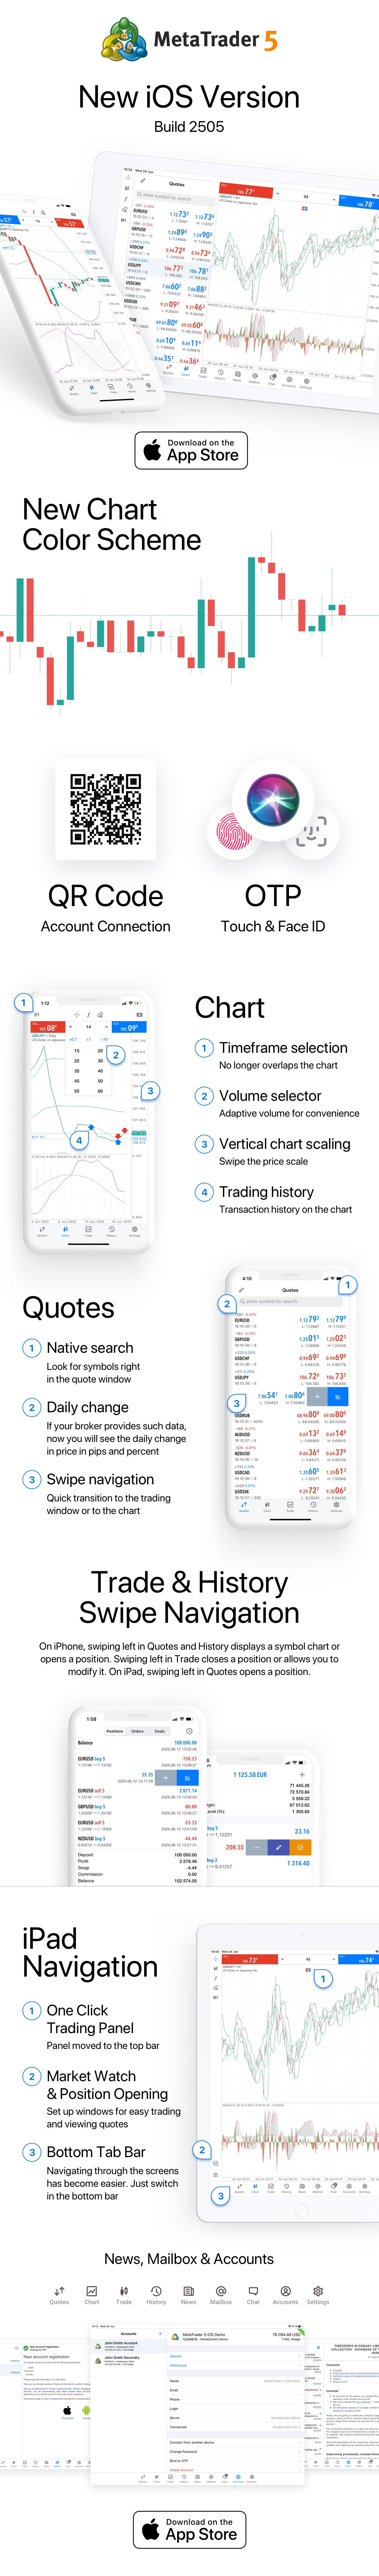 MetaTrader 5 for iOS overhauled — swipes, new sections and color schemes